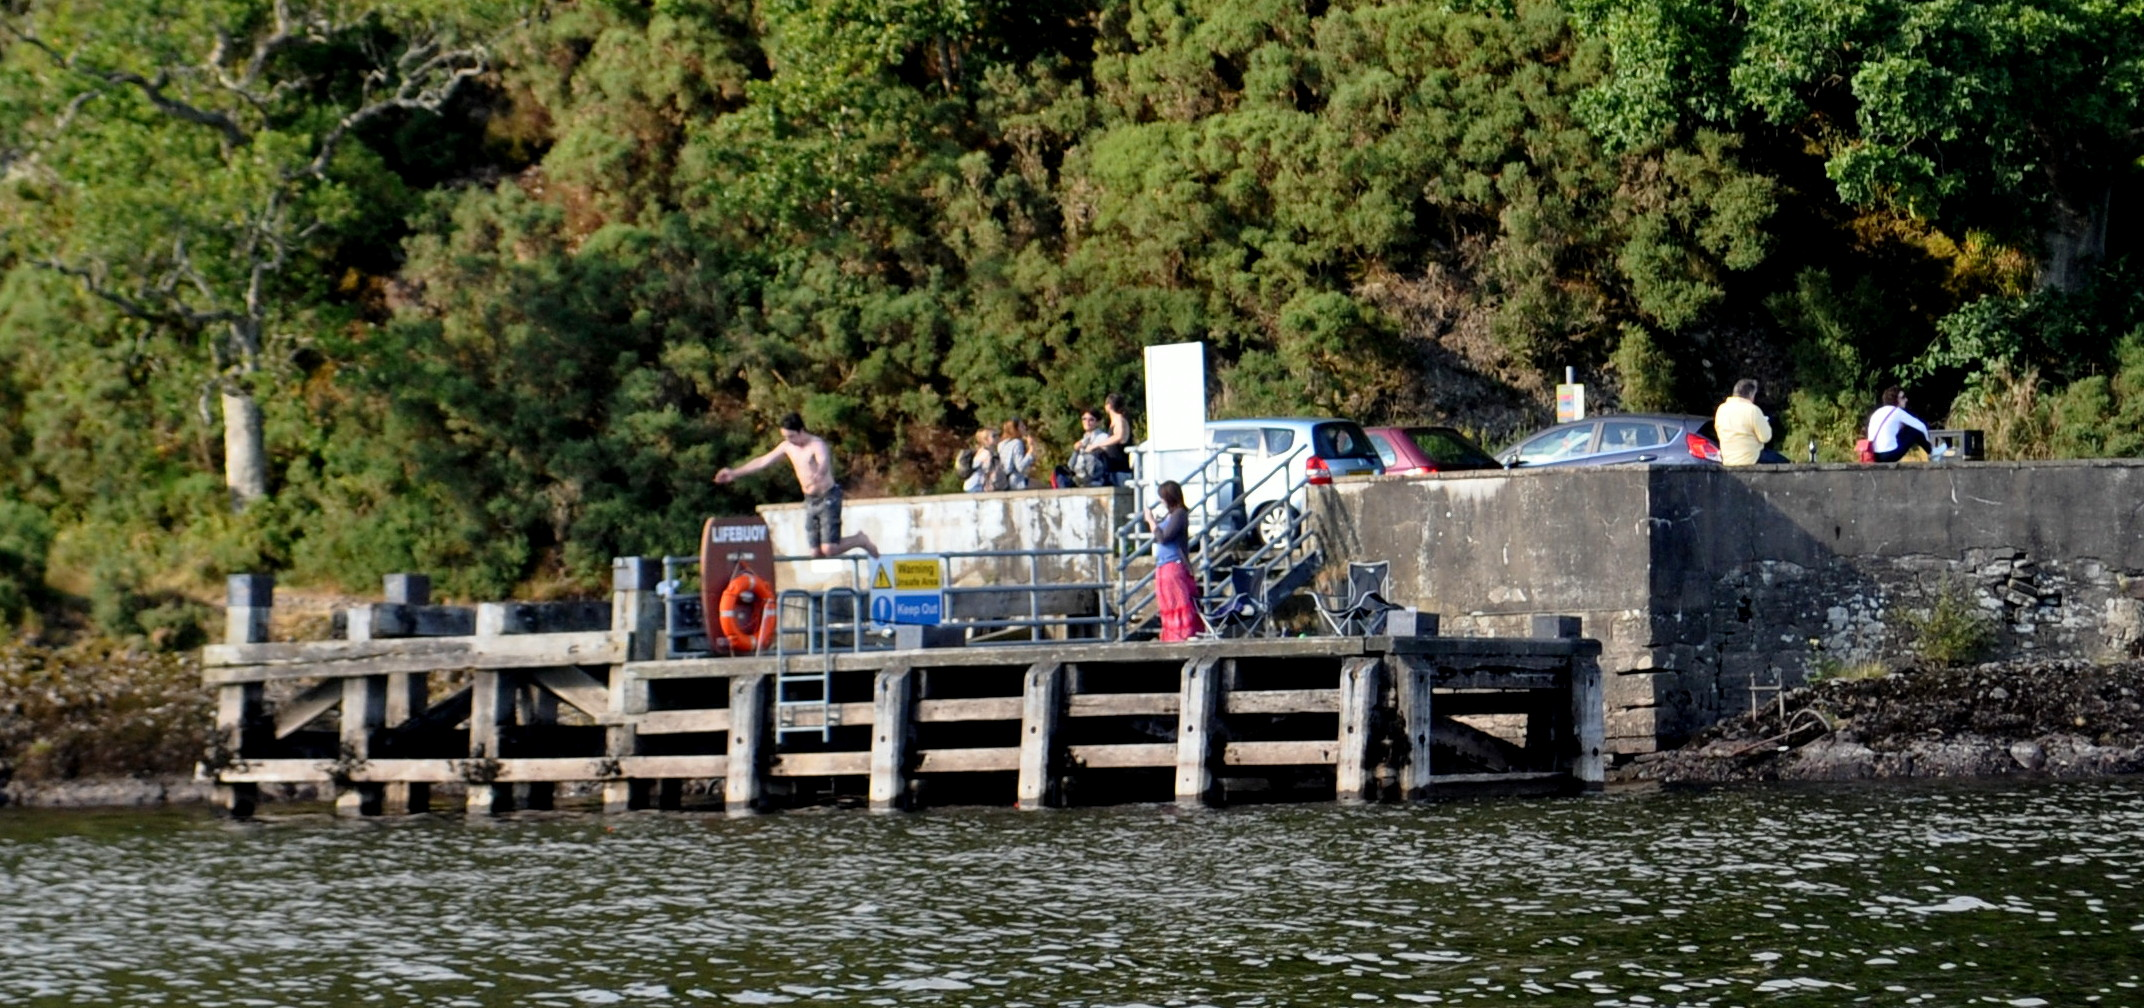 TOURISM: SITUATION FOR THE LOCH LOMONDSIDE INDUSTRY IS DESPERATE